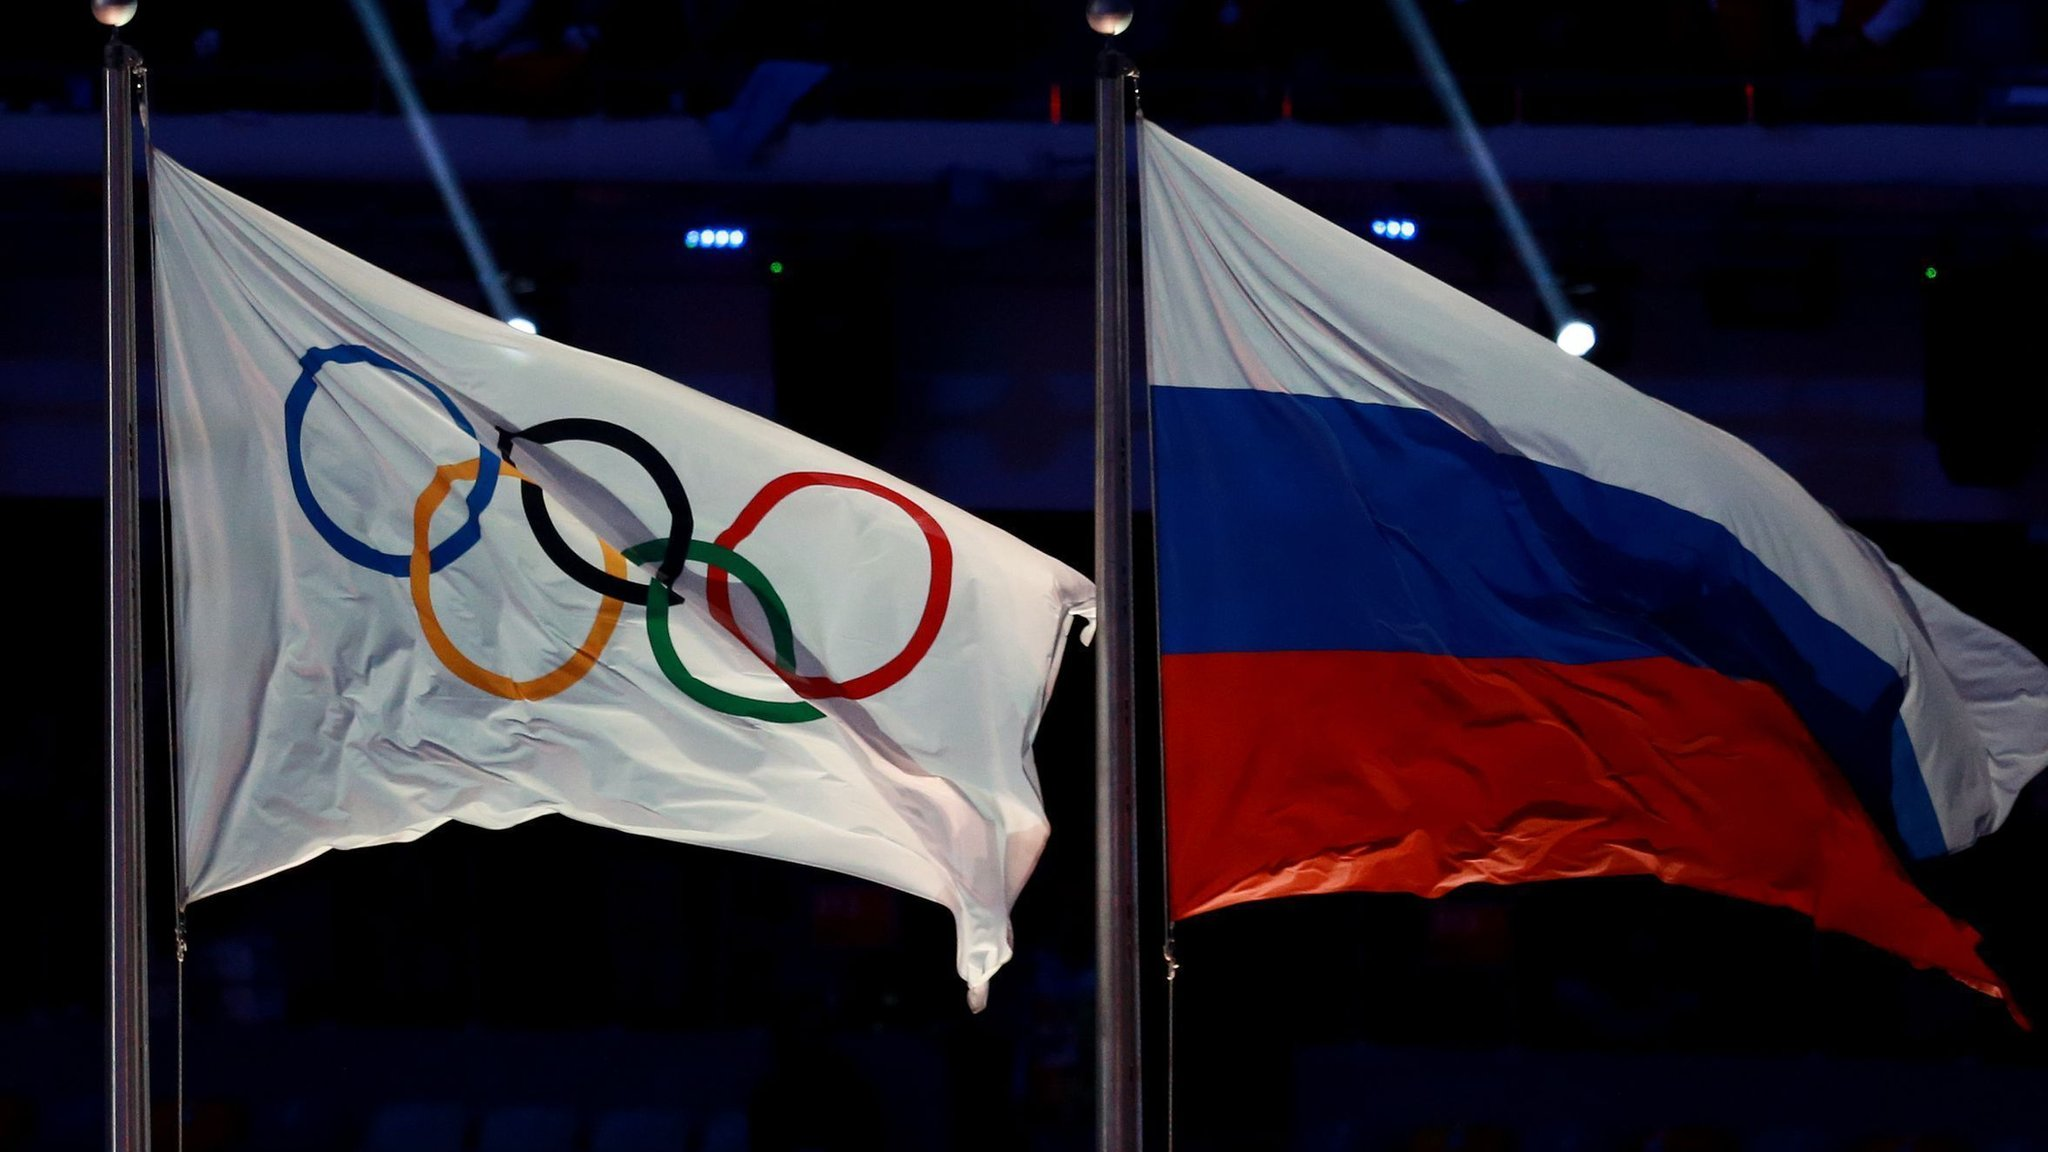 Russia ban lifted if no further violations - but no flag at closing ceremony